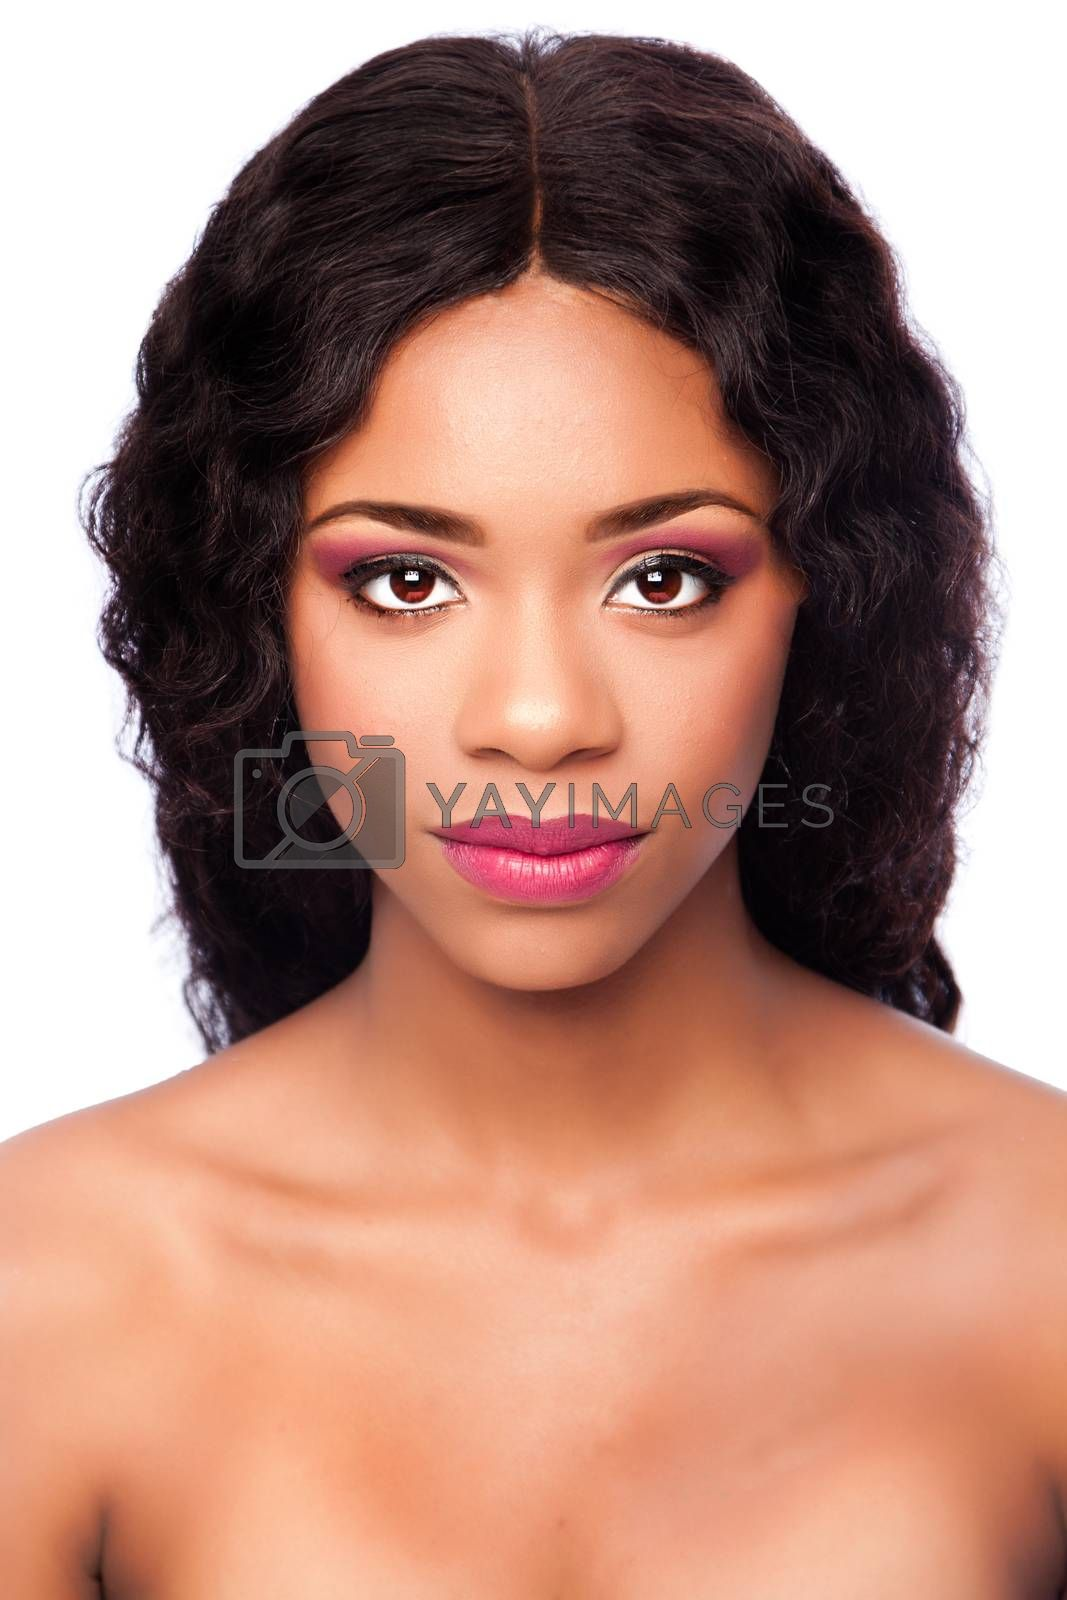 Beautiful face of black African woman with makeup cosmetics and curly hair, skincare concept.